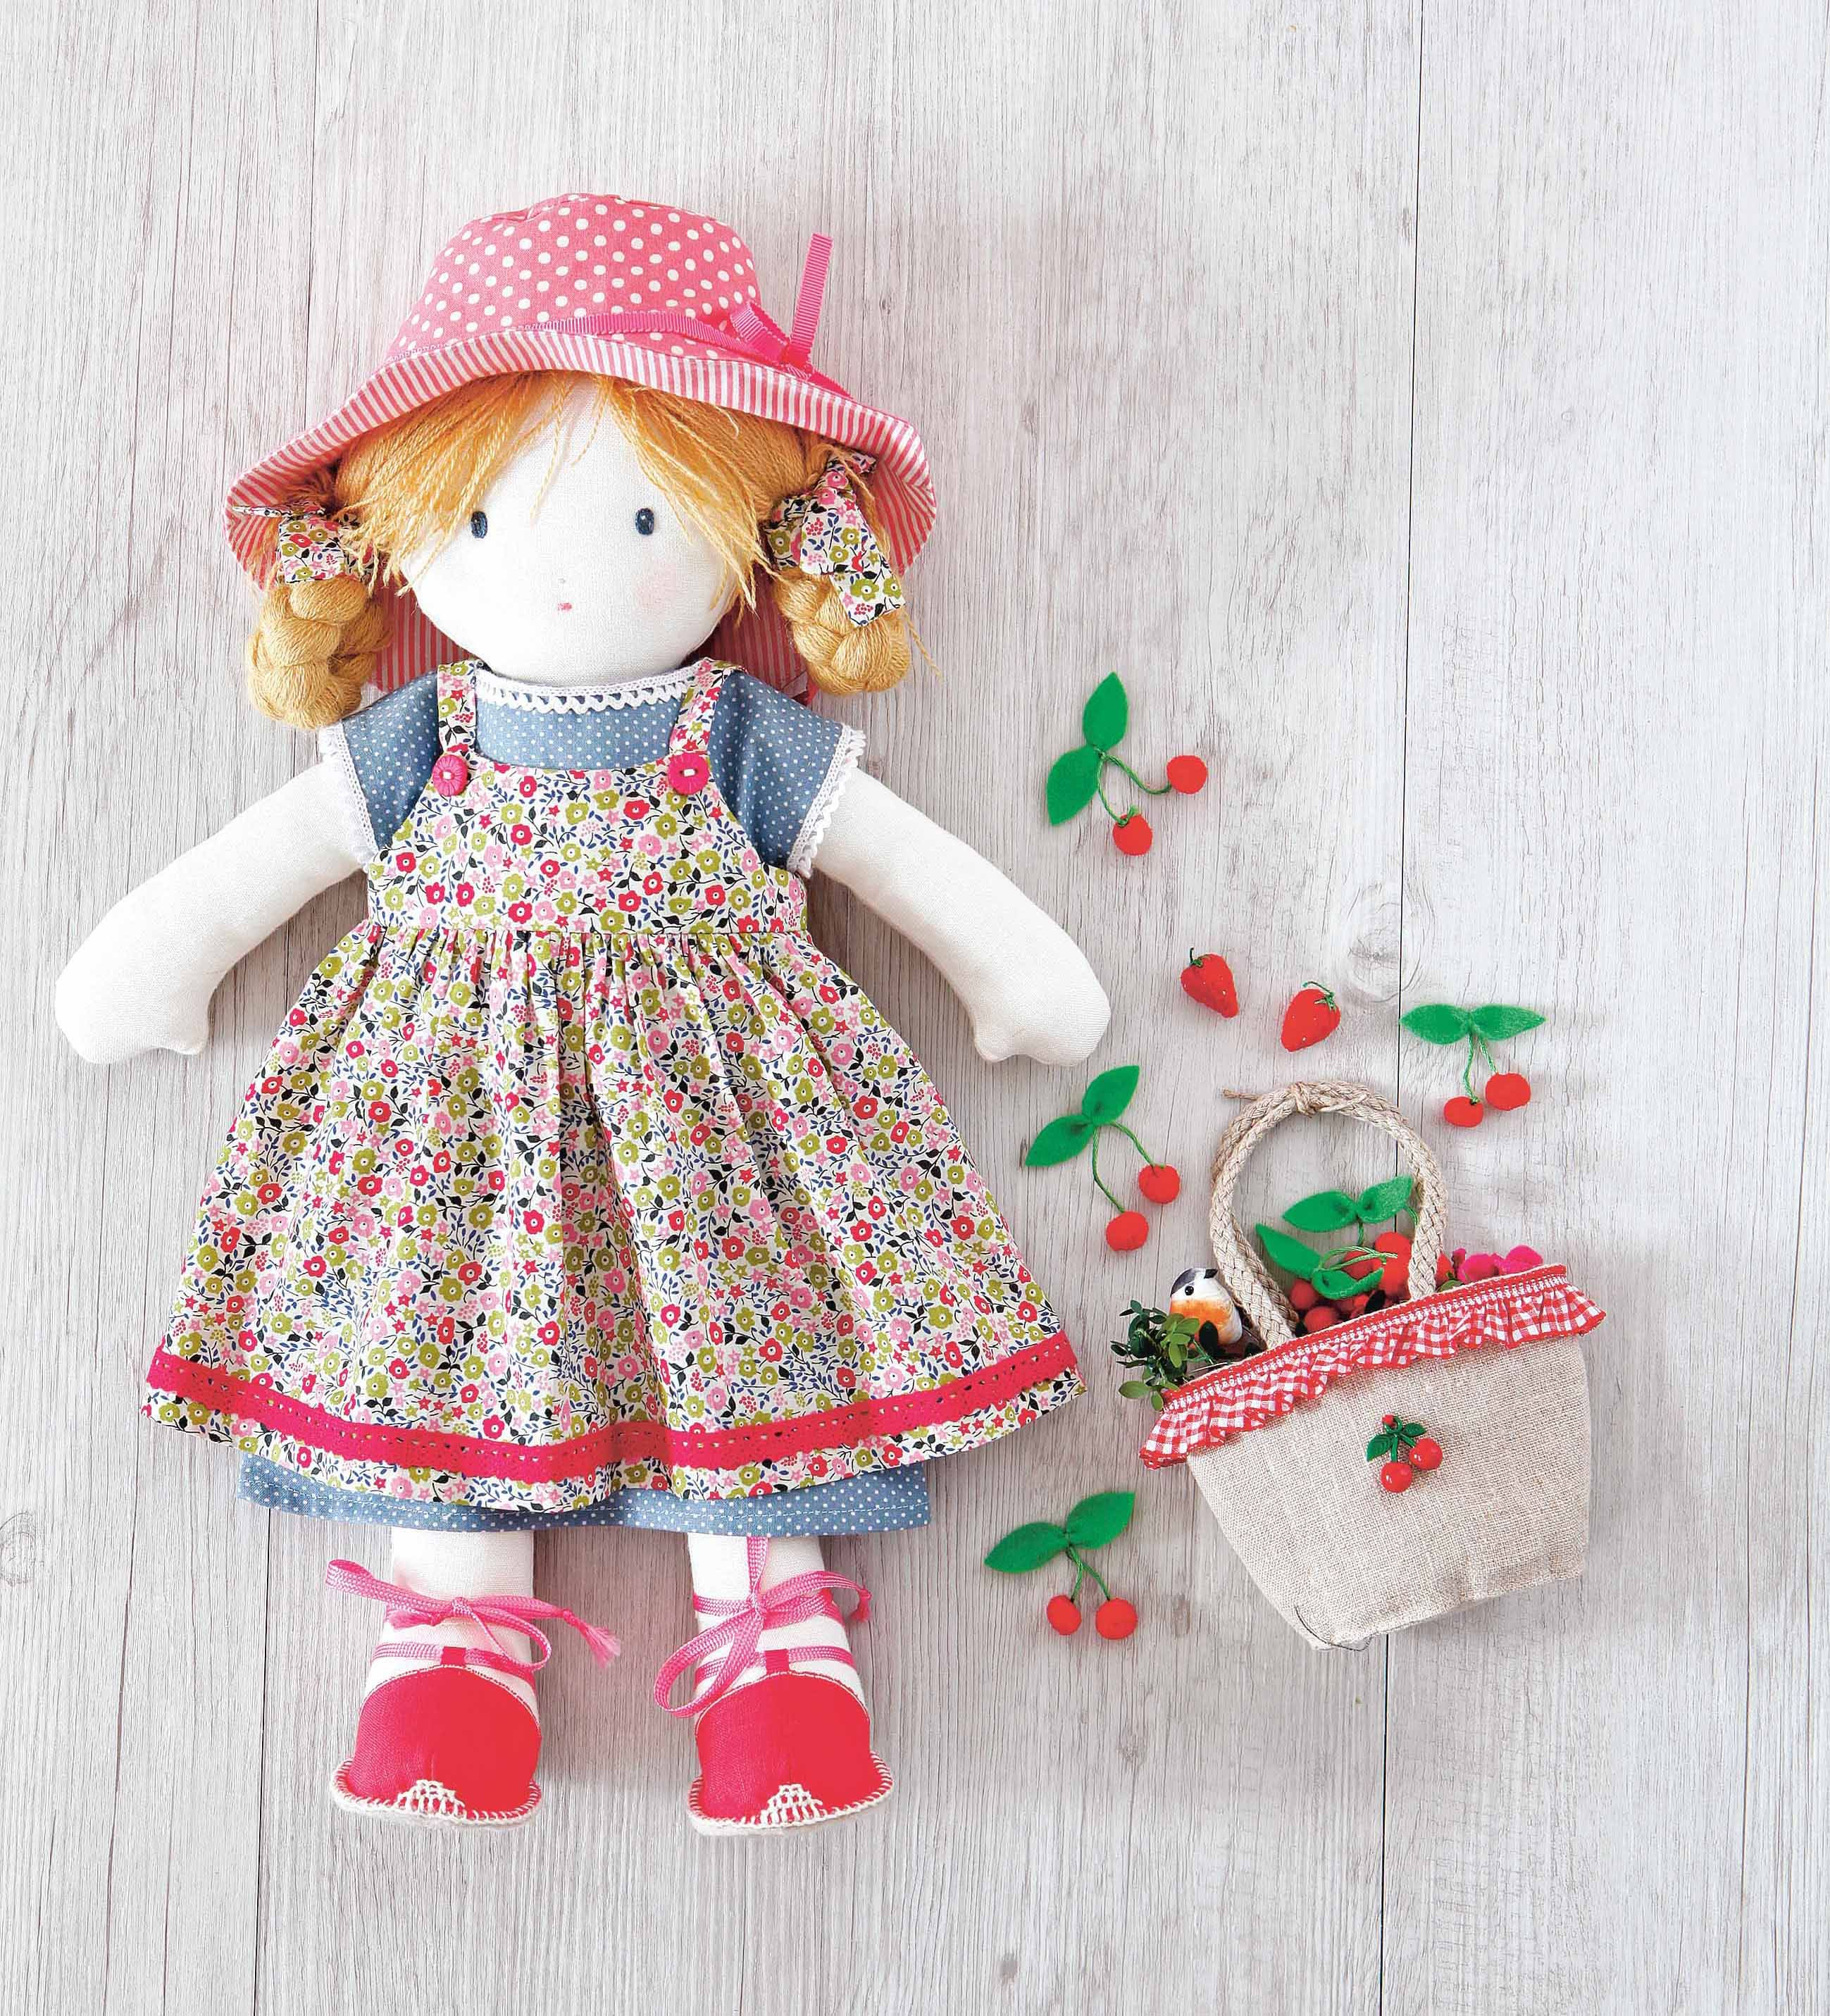 Pattern: Printable Rag Doll Sewing Pattern | Sewing | Pinterest - Free Printable Rag Doll Patterns